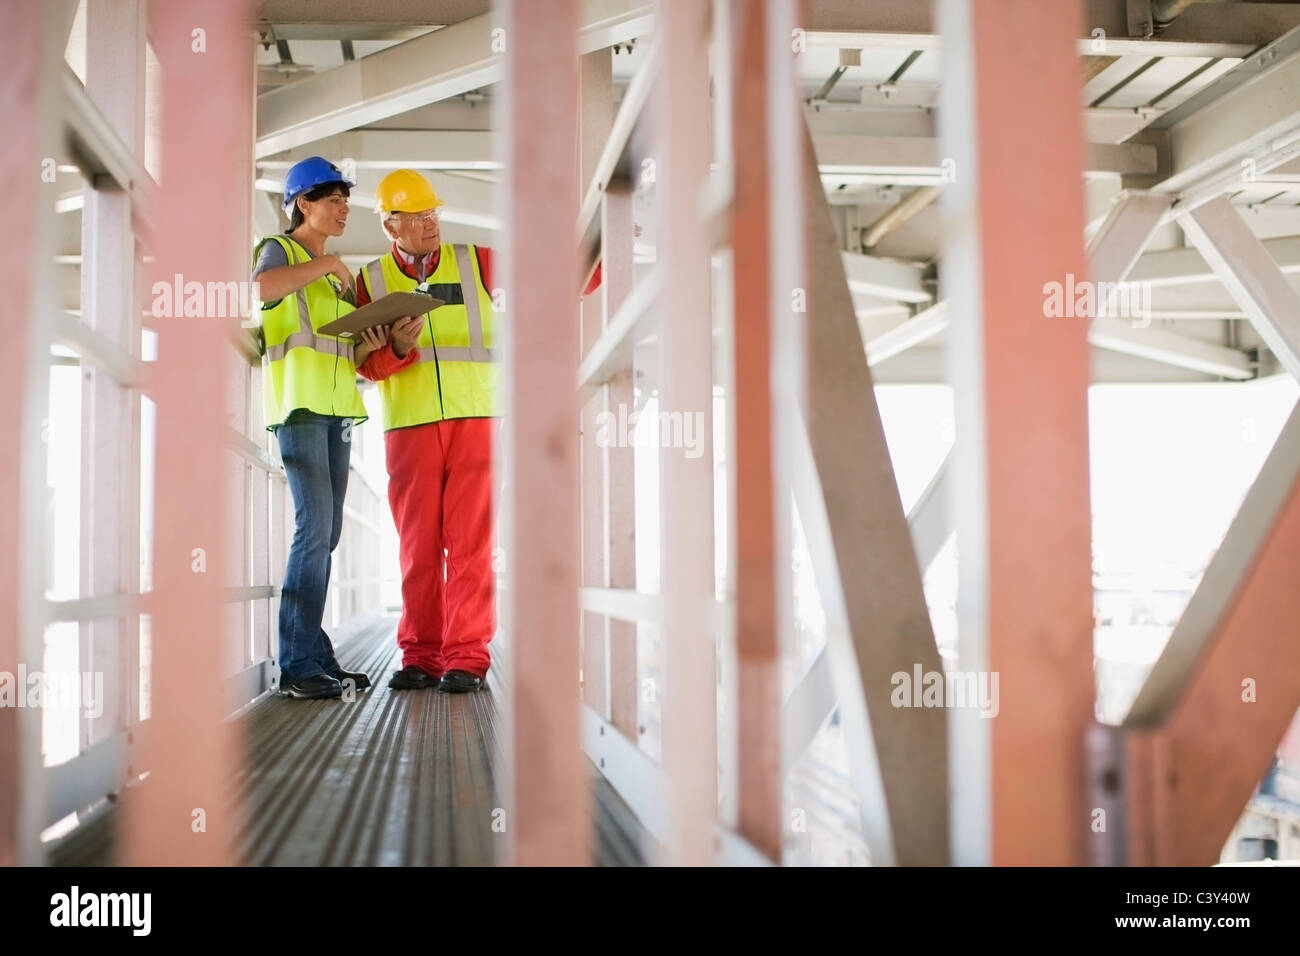 Architect and builder duscussing plans - Stock Image